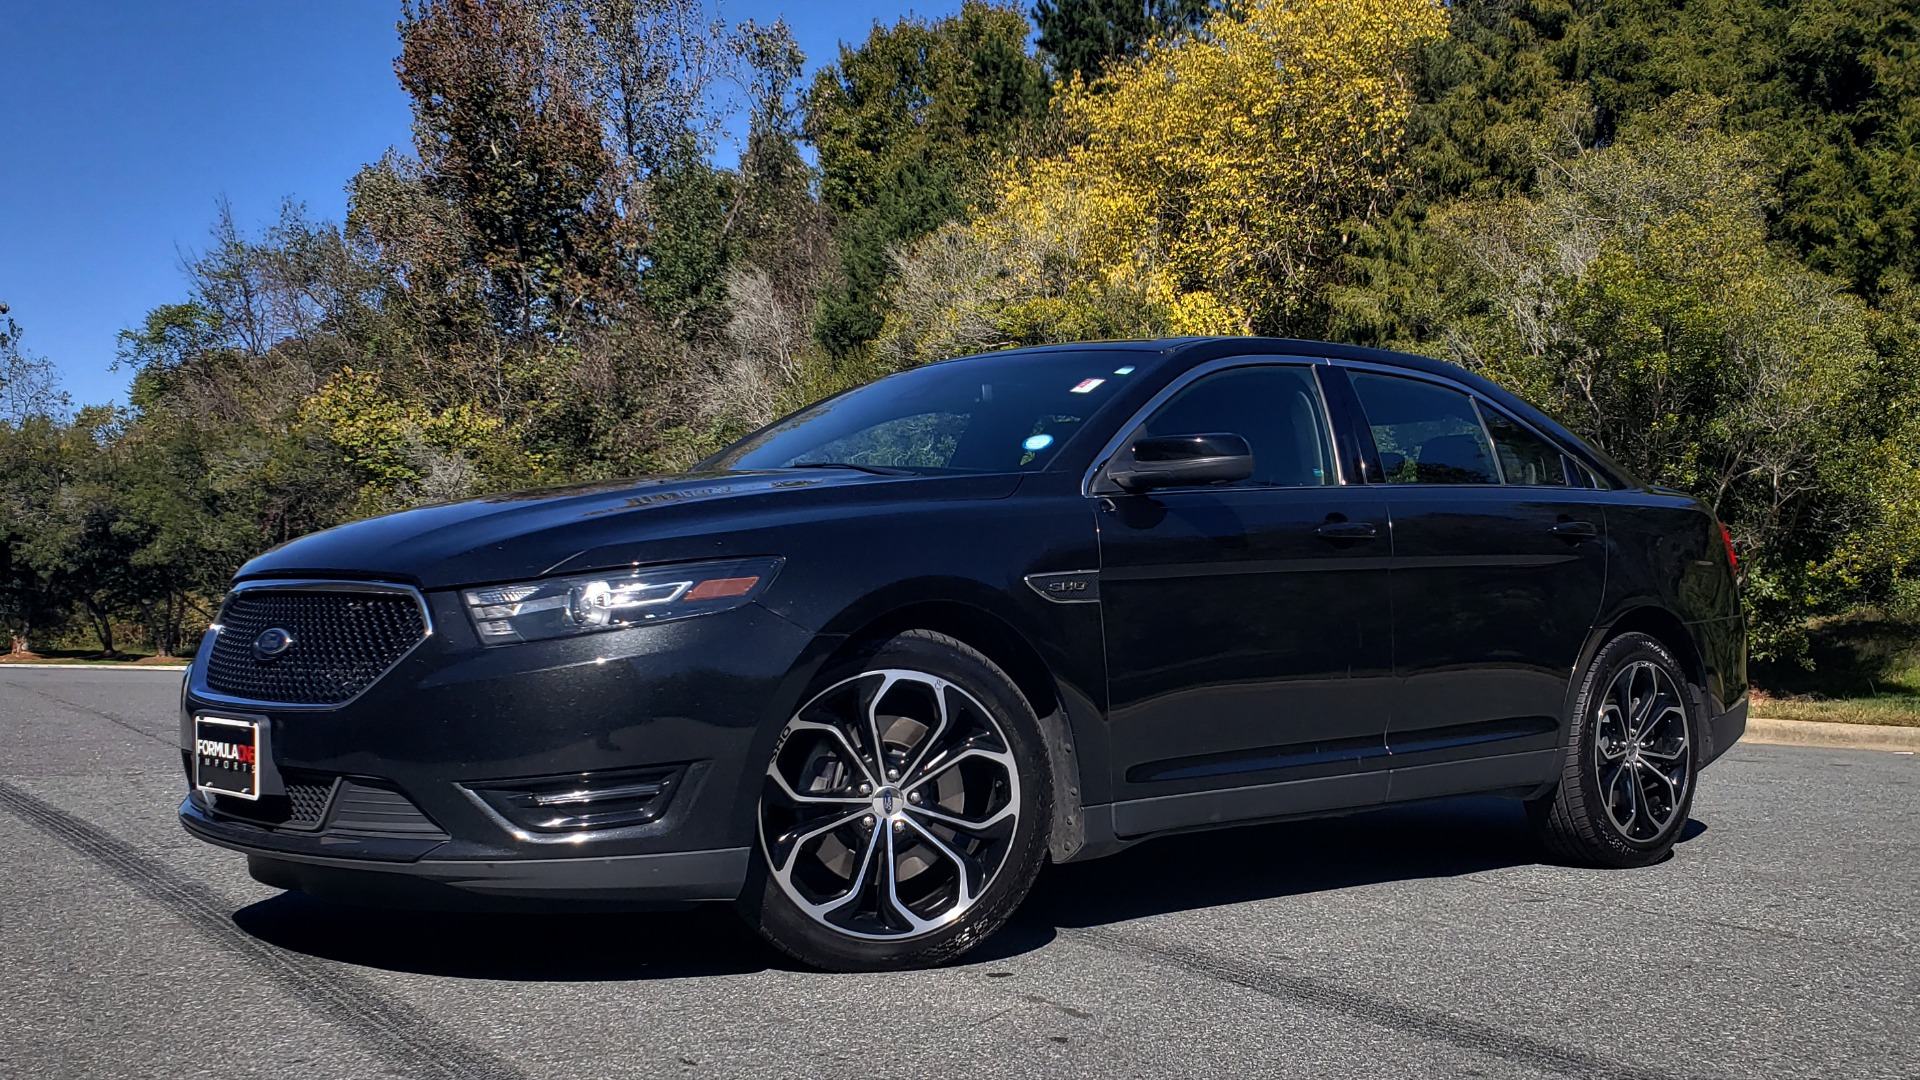 Used 2015 Ford TAURUS SHO 3.5L ECOBOOST V6 / NAV / SUNROOF / HTD STS / BSM / REARVIEW for sale Sold at Formula Imports in Charlotte NC 28227 1